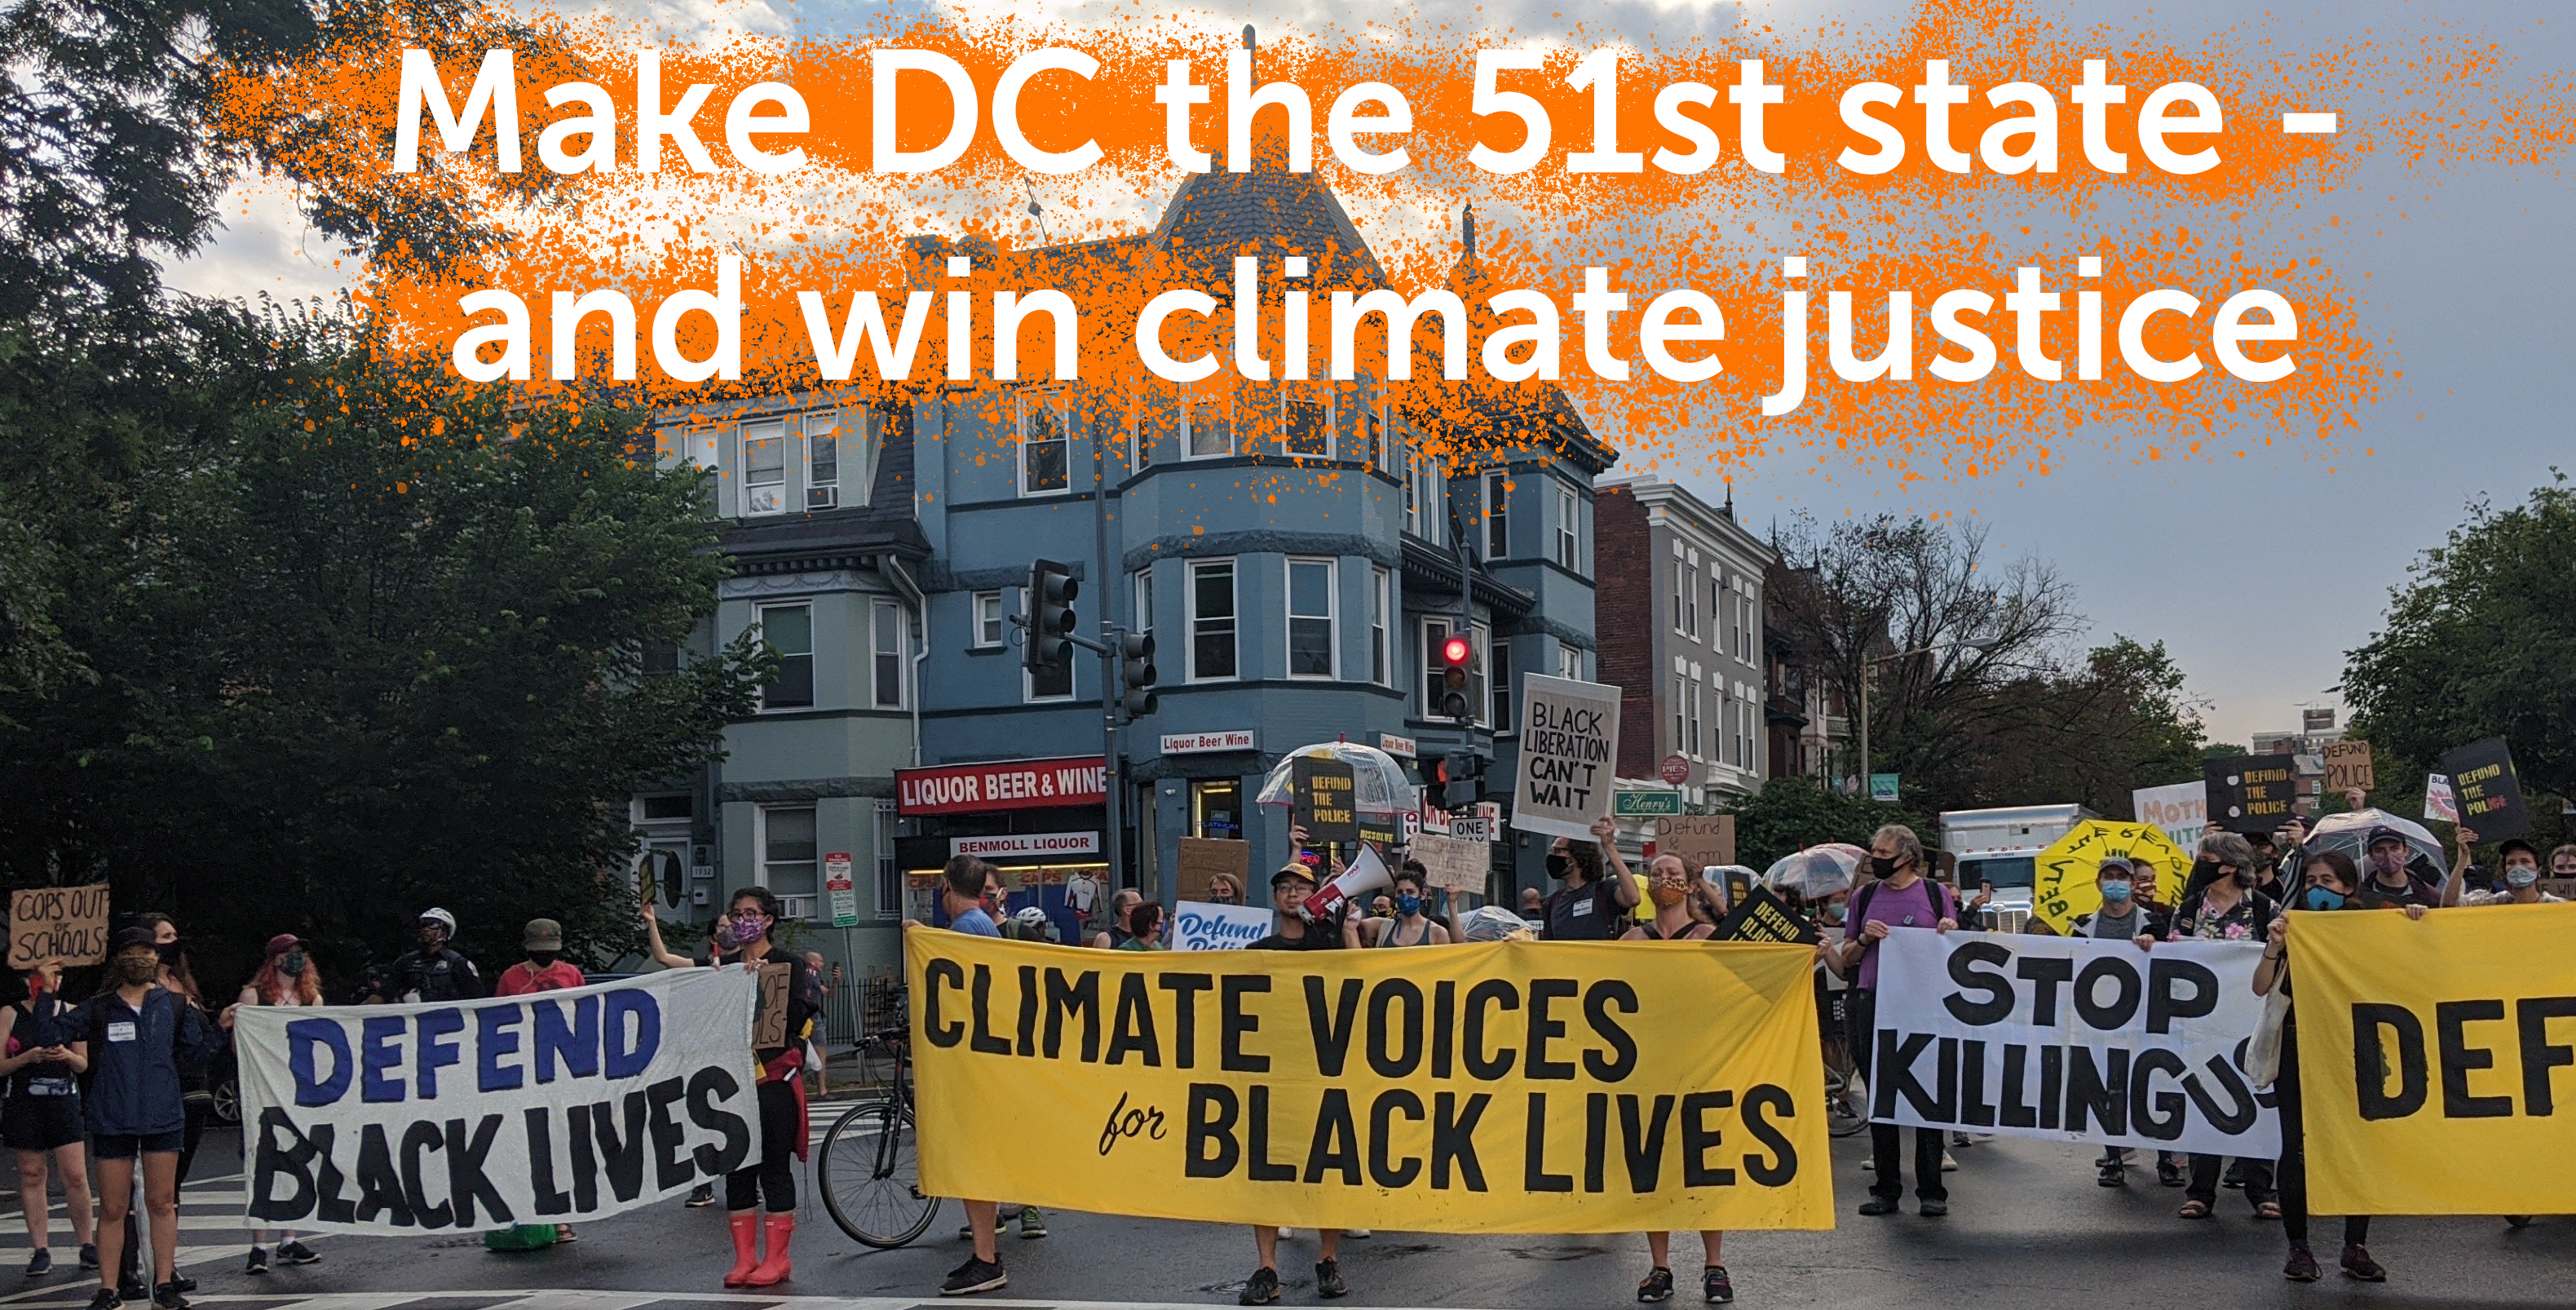 climate justice for black lives